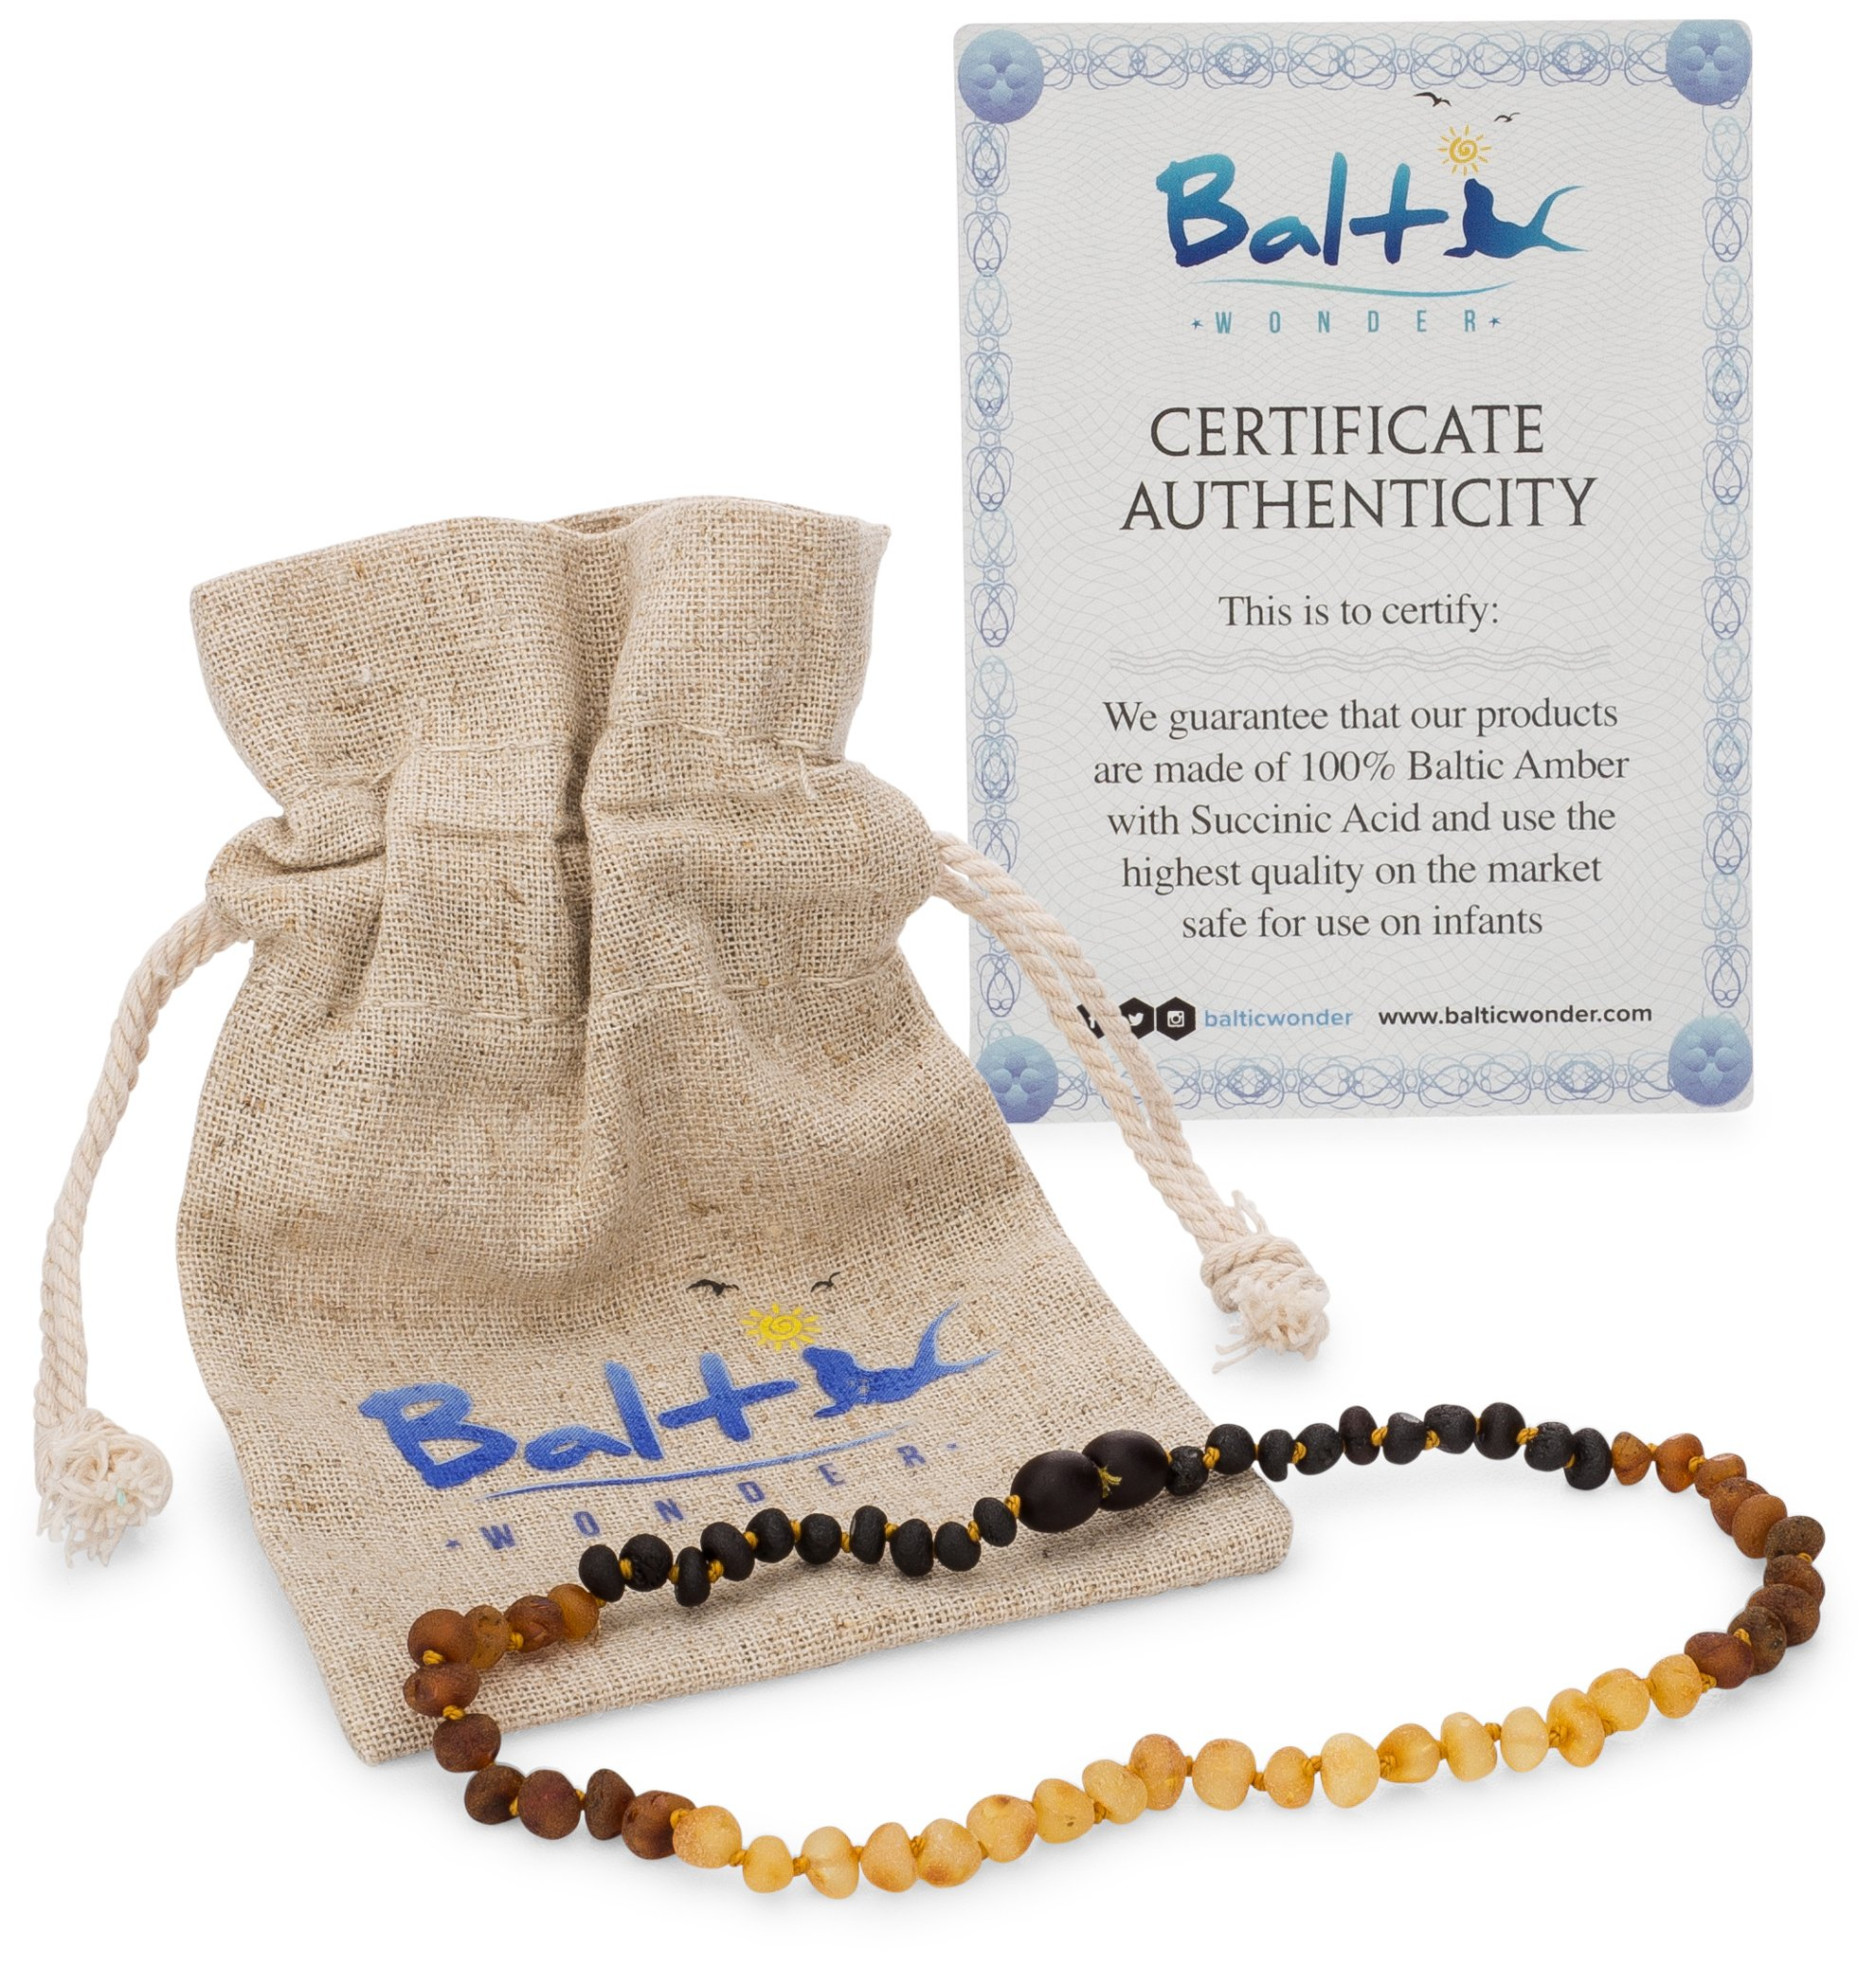 Raw Baltic Amber Teething Necklaces For Babies (Unisex) (Reverse Rainbow) - Anti Flammatory, Drooling & Teething Pain Reduce Properties - Natural Certificated with the Highest Quality Guaranteed. …